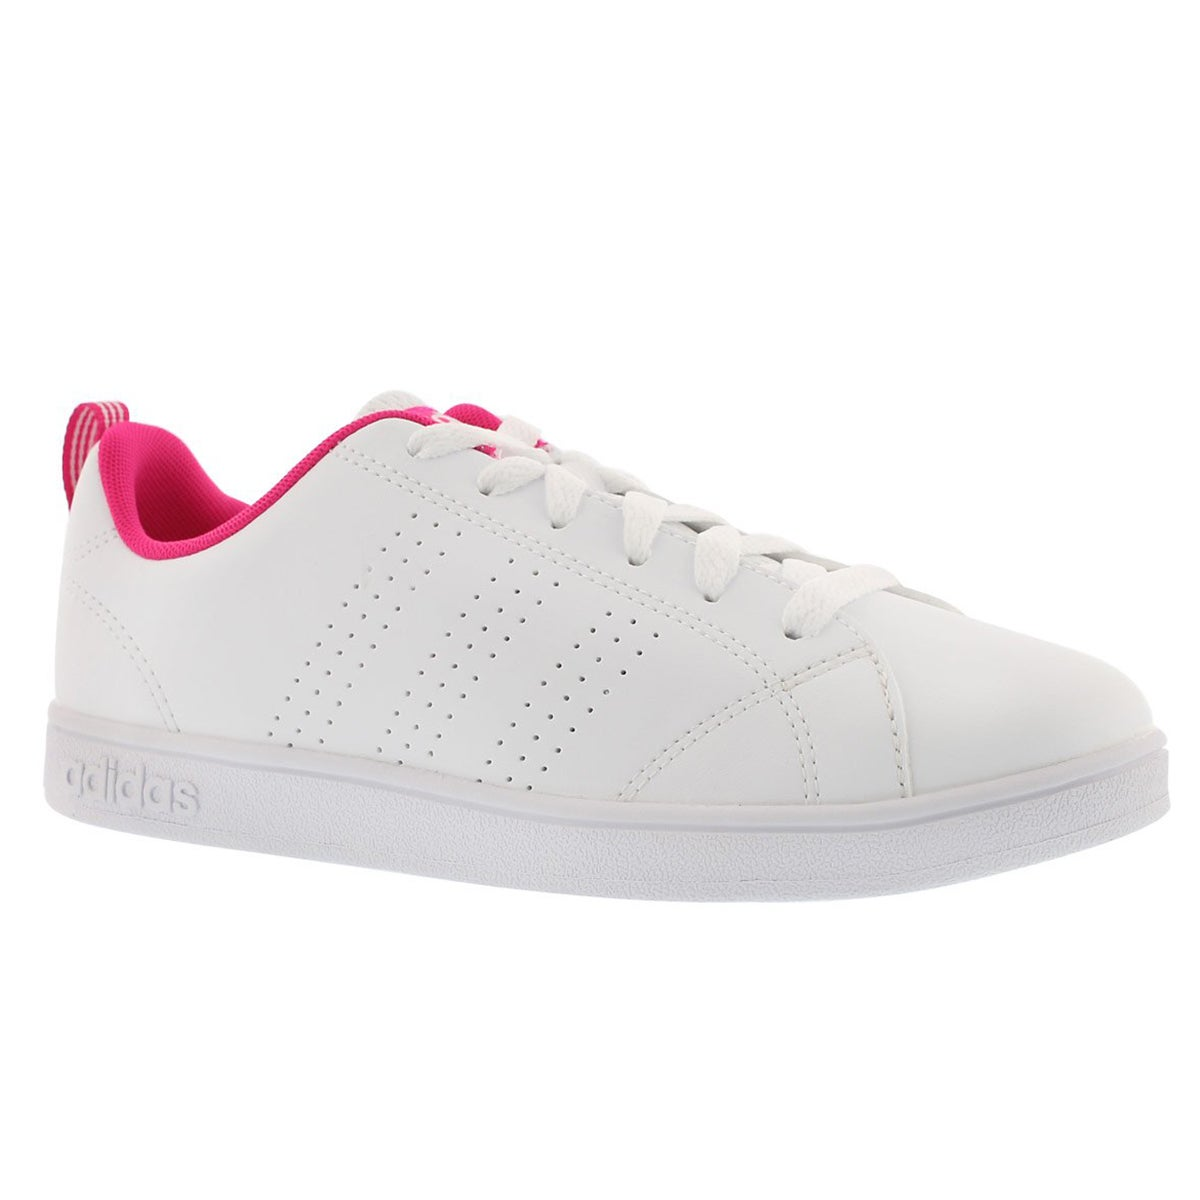 Girls' ADVANTAGE CLEAN white/pink sneakers